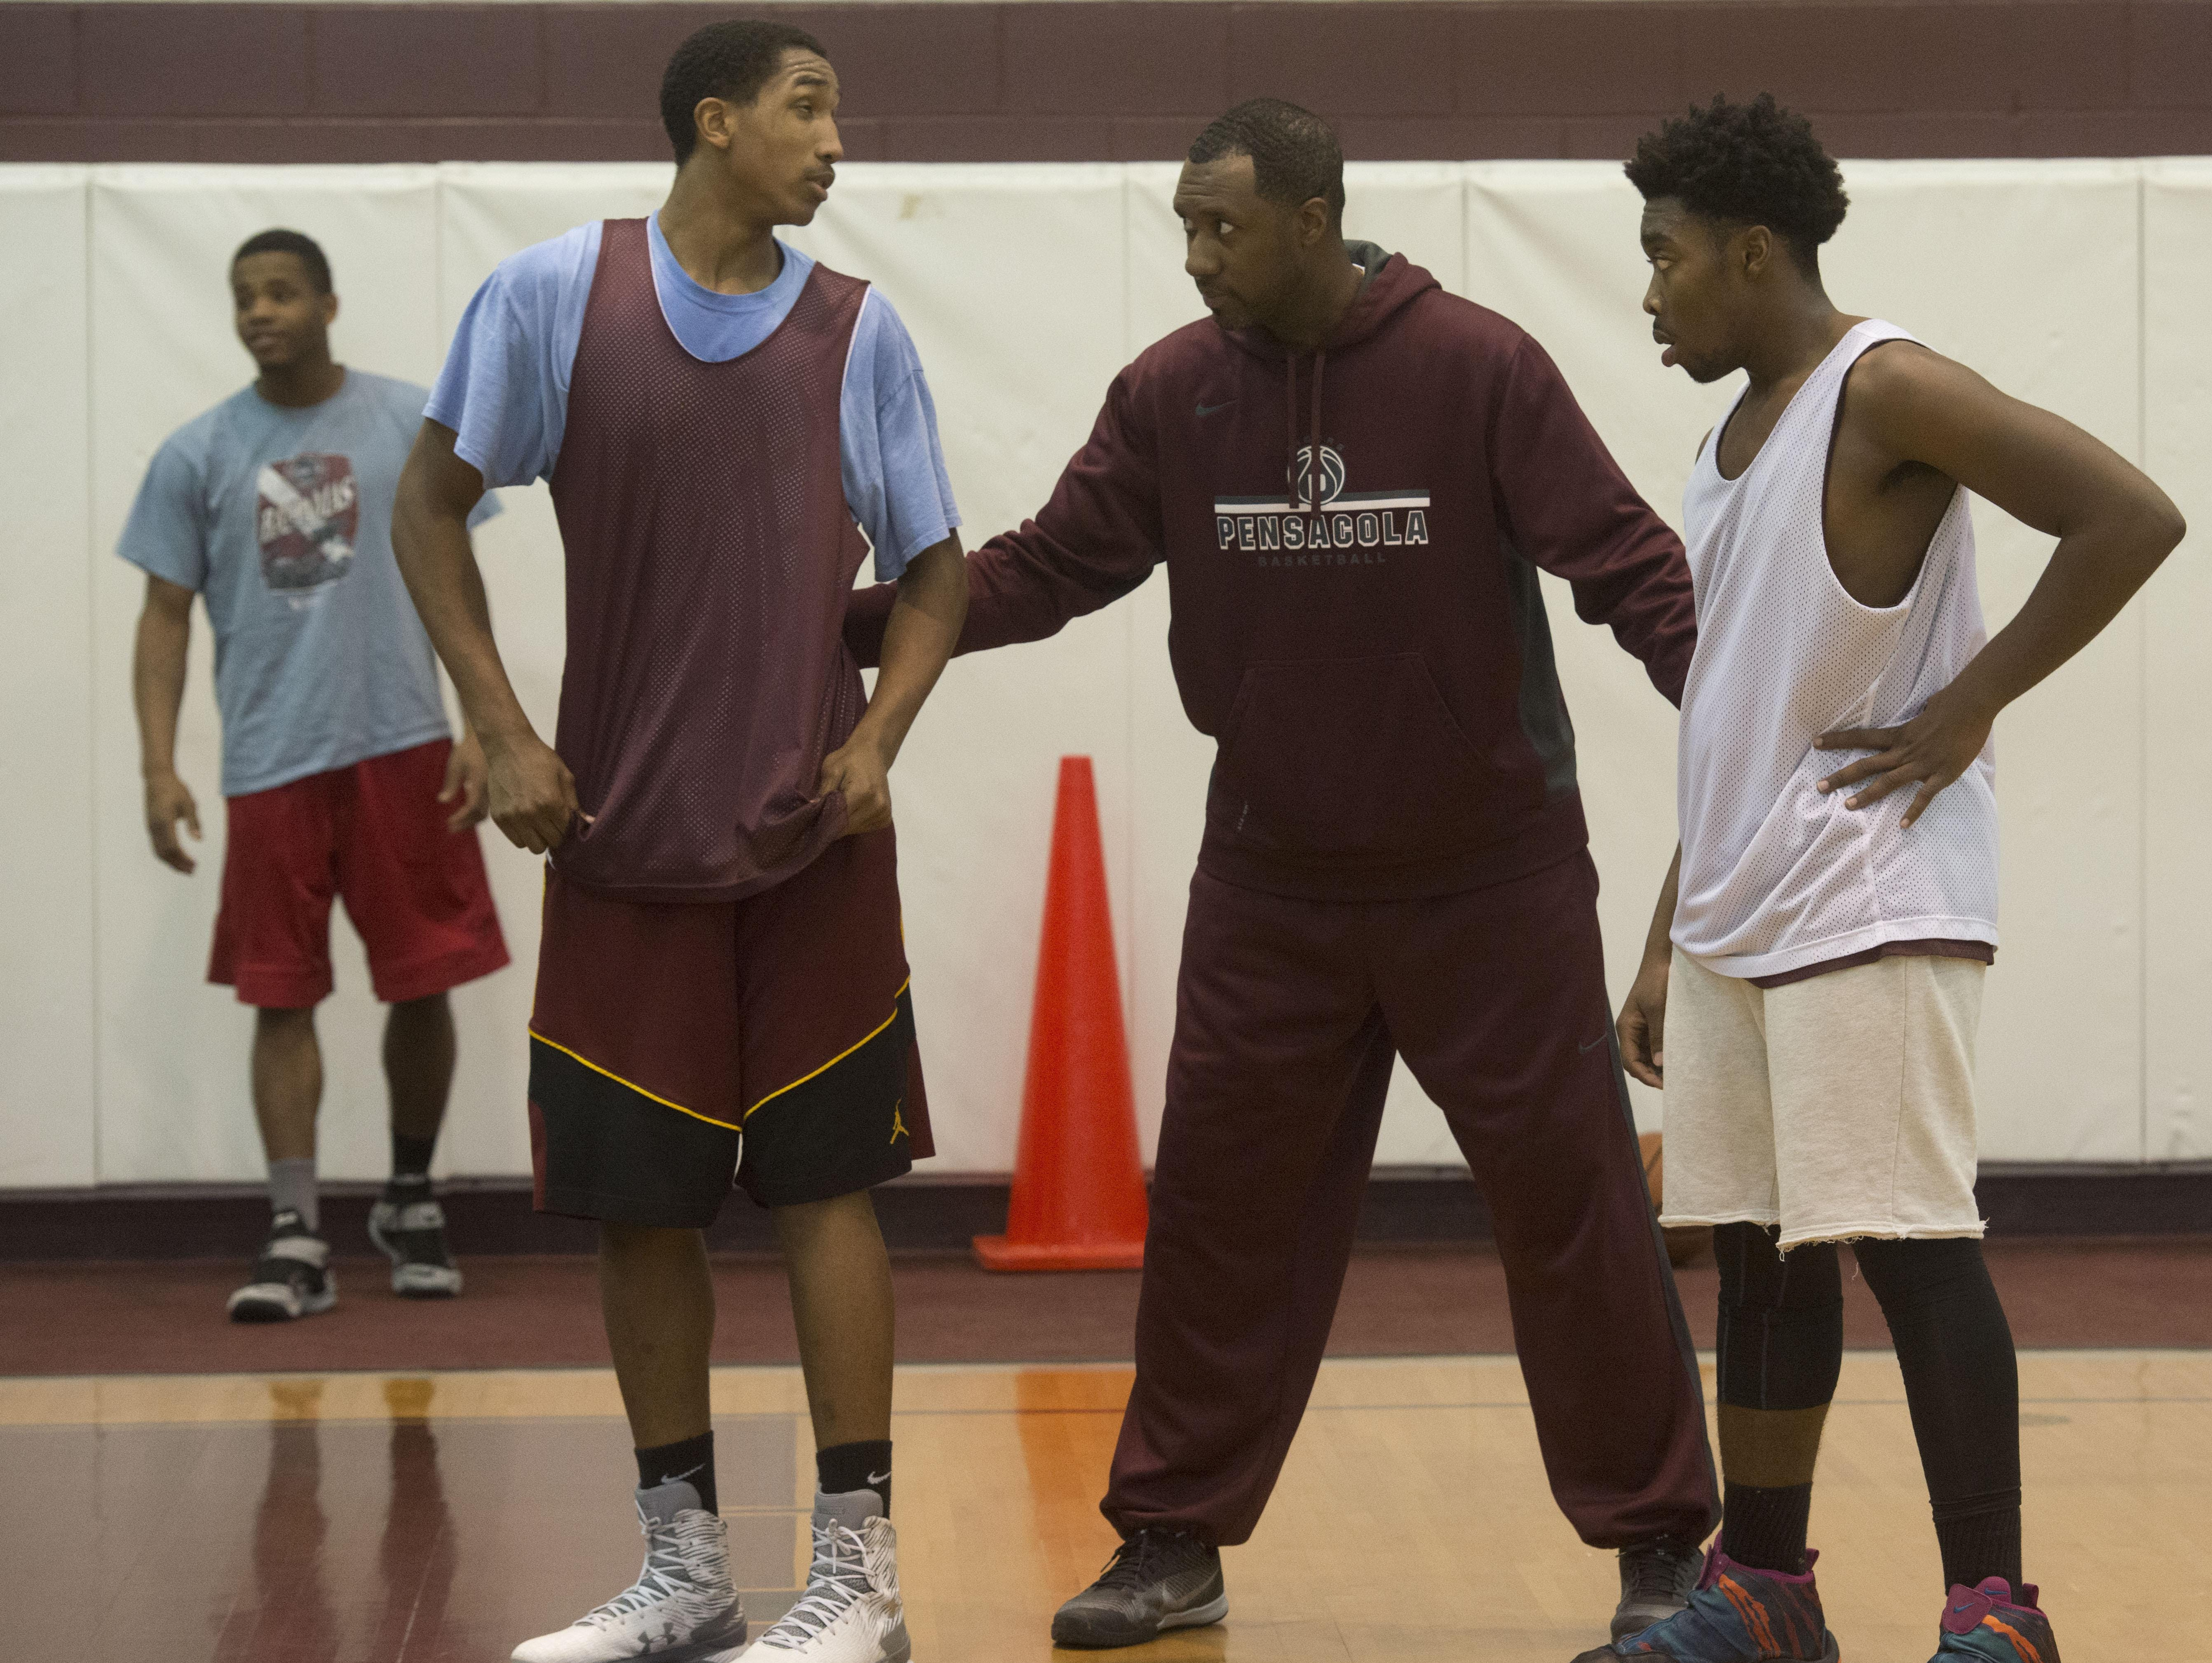 Pensacola High School Basketball Coach, Terrence Harris, center, walks players, Davonchae Bryant, left, and Javen Johnson, right, through a play during practice. The Tigers host Gainesville High on Friday at 7 p.m. in the Region 1-6A Finals.